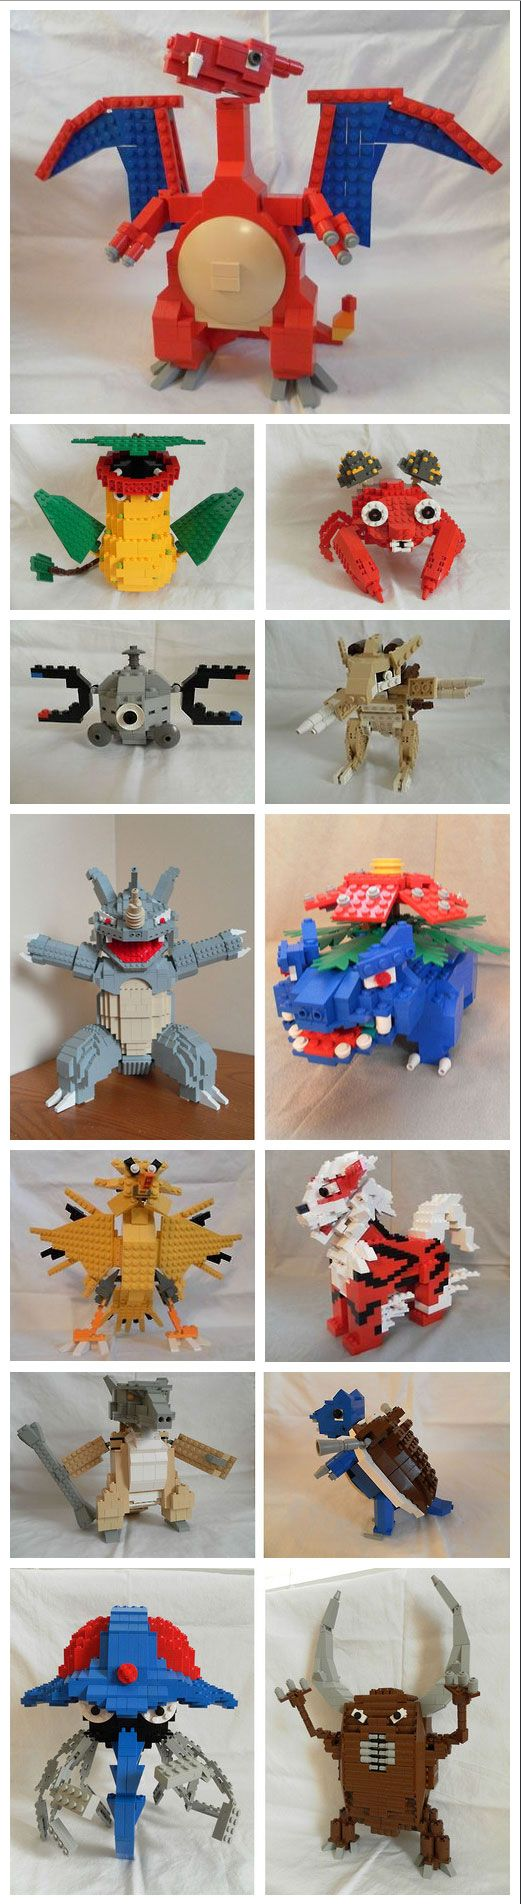 """A bunch of LEGO Pokemon I built"" - I donut exist"